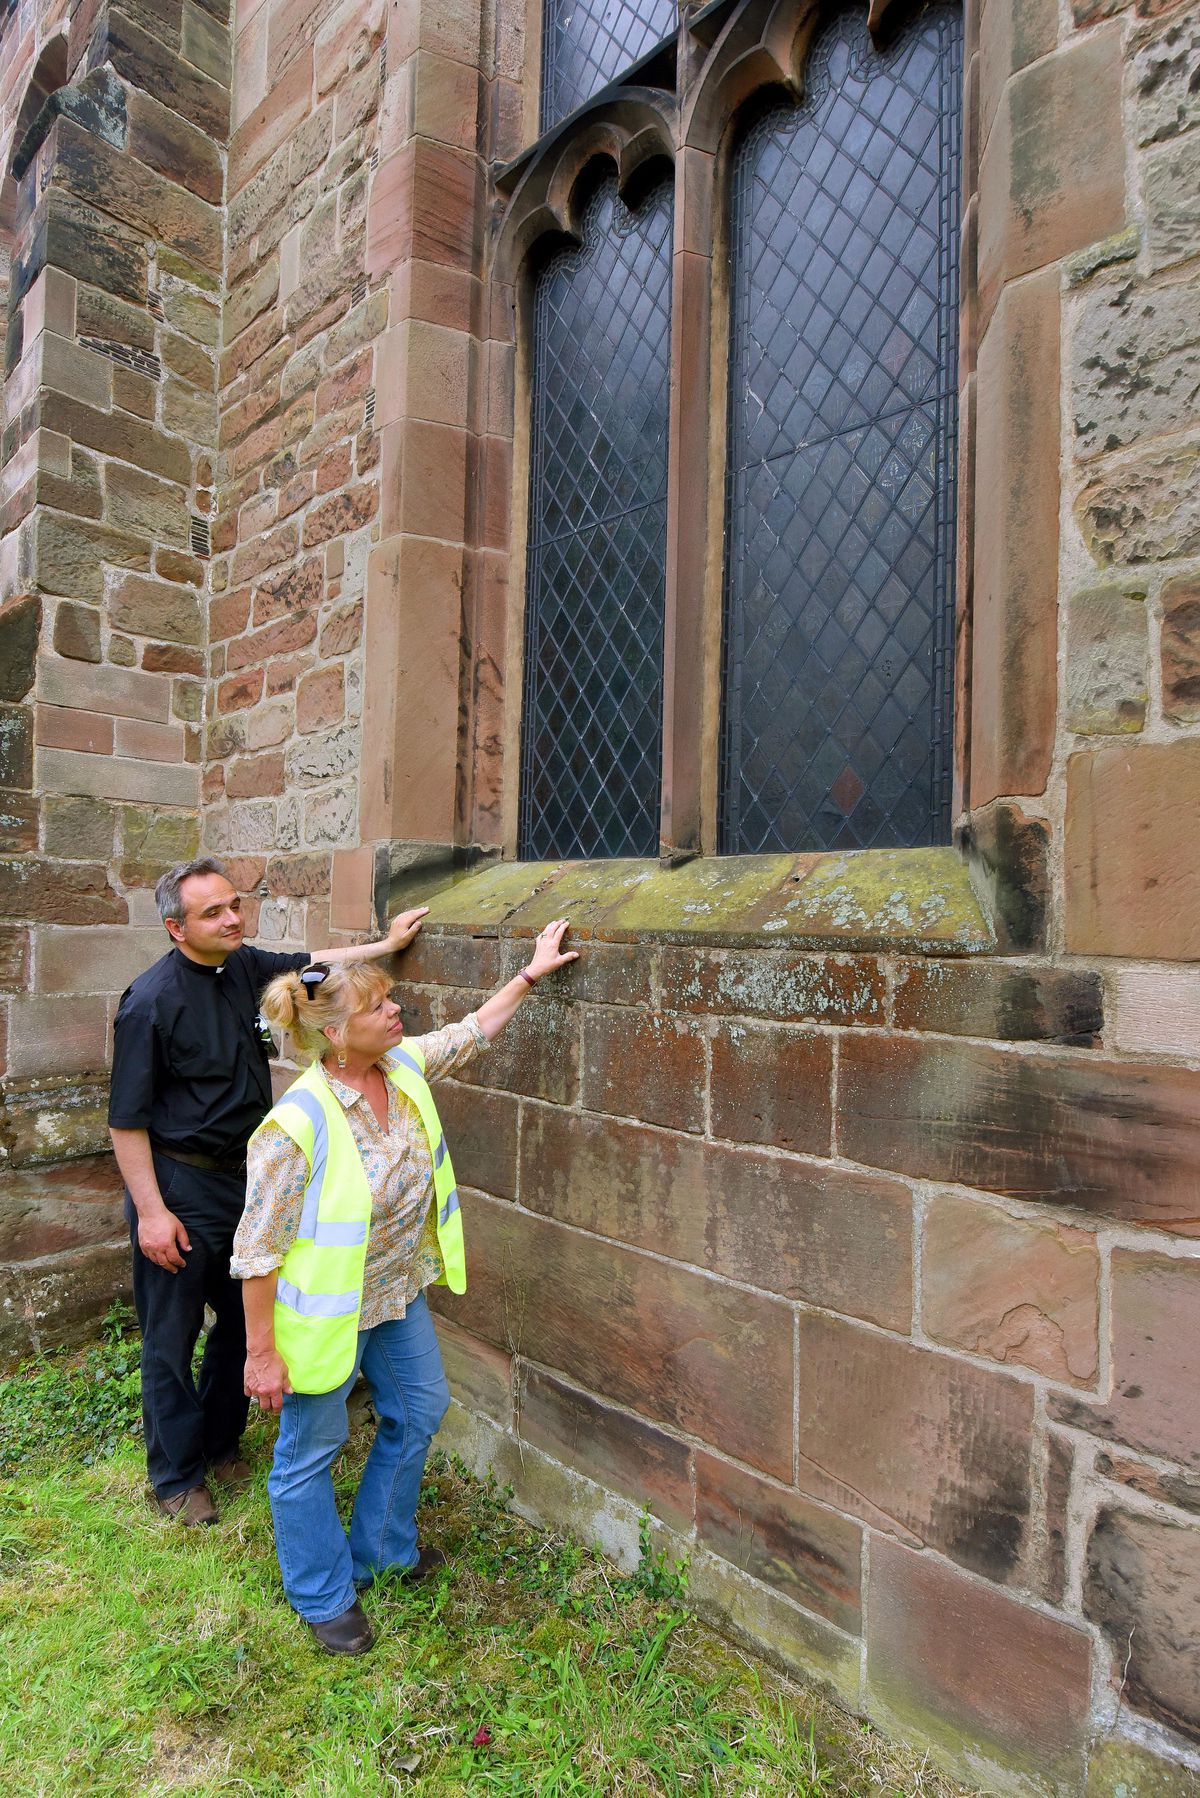 Archaeology dig at St Michael's and All Angels Church, Penkridge. Rev Greg Yerbury and heritage consultant and director of Commercial Archaeologists Helen Martin-Bacon, next to what used to be the original entrance to the church.